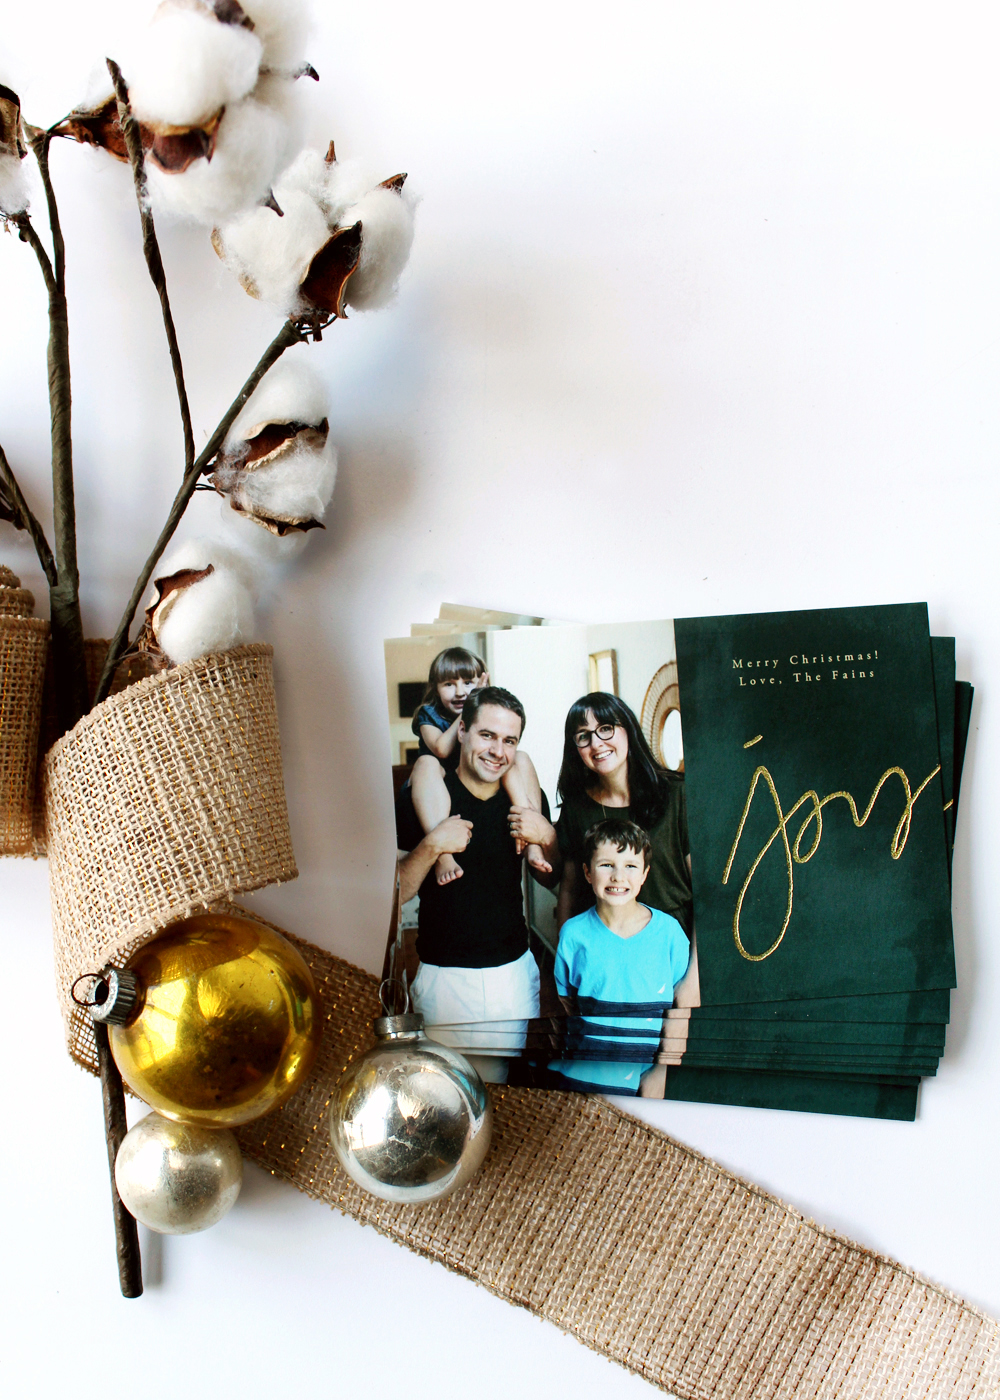 make holiday postcards with a family picture to send to friends and family